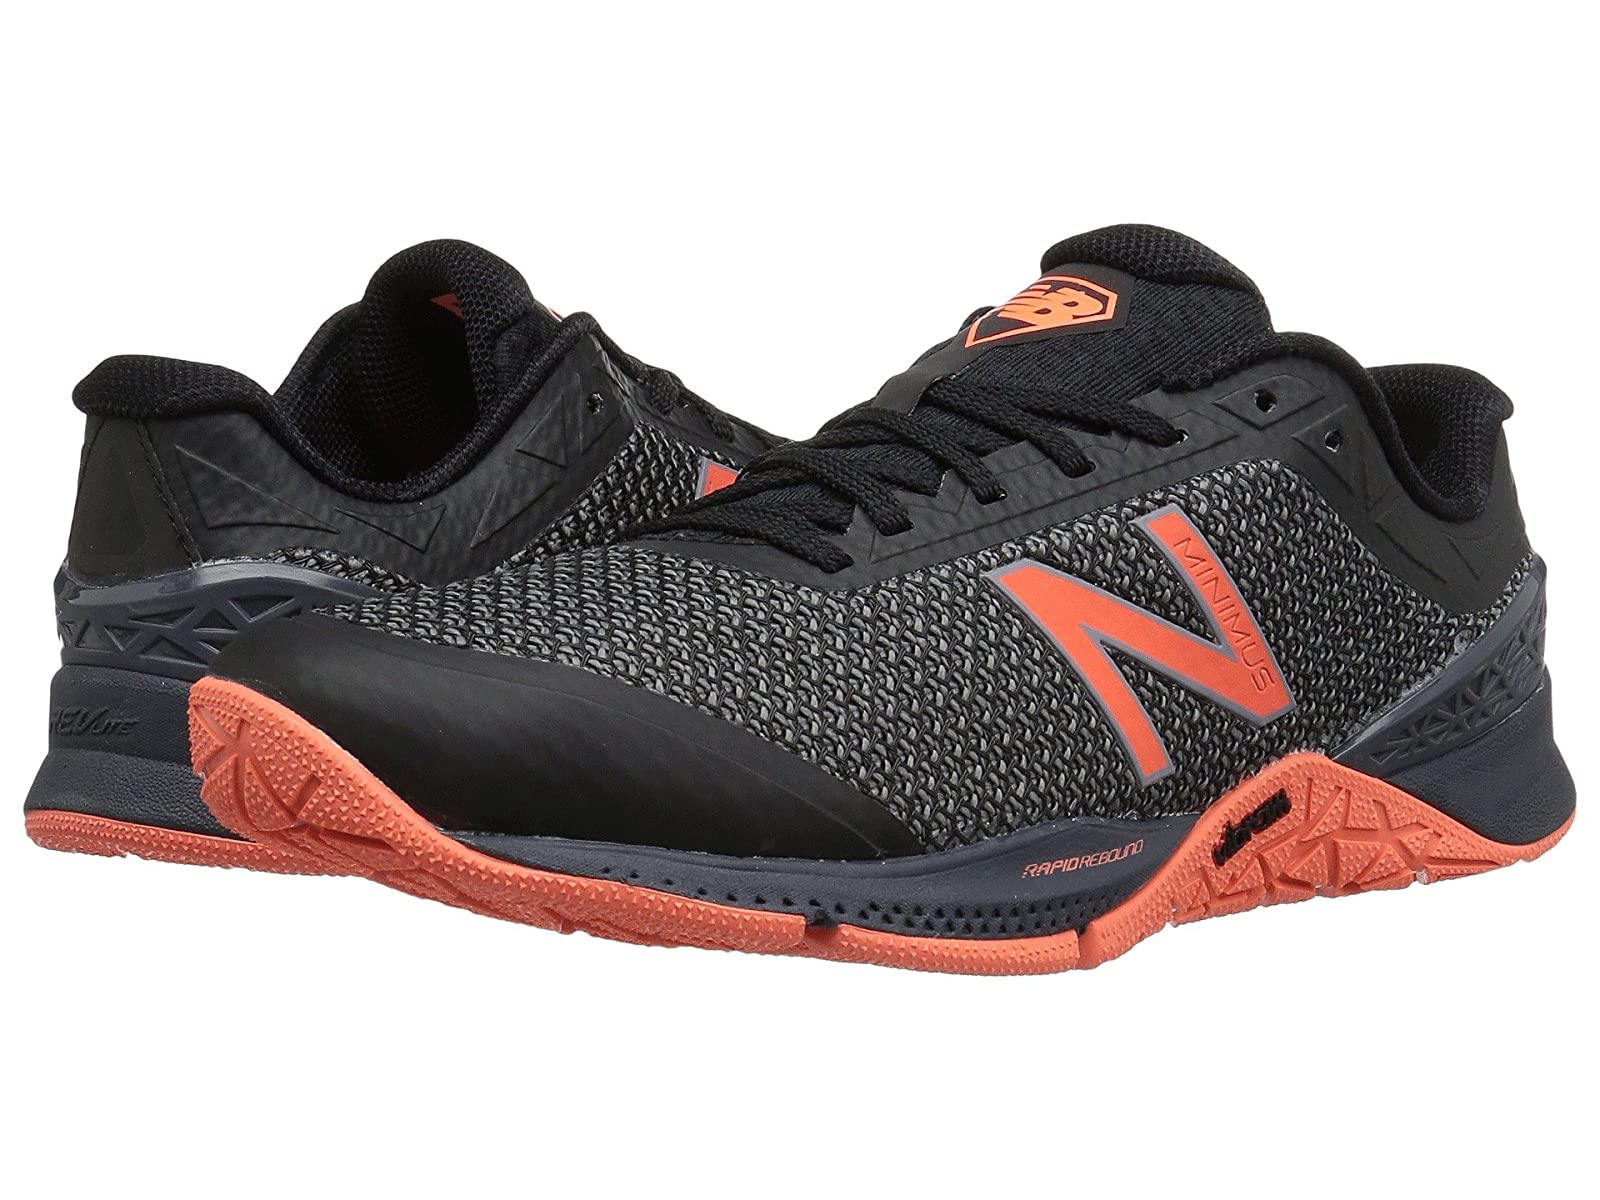 New Balance WX40v1Cheap and distinctive eye-catching shoes